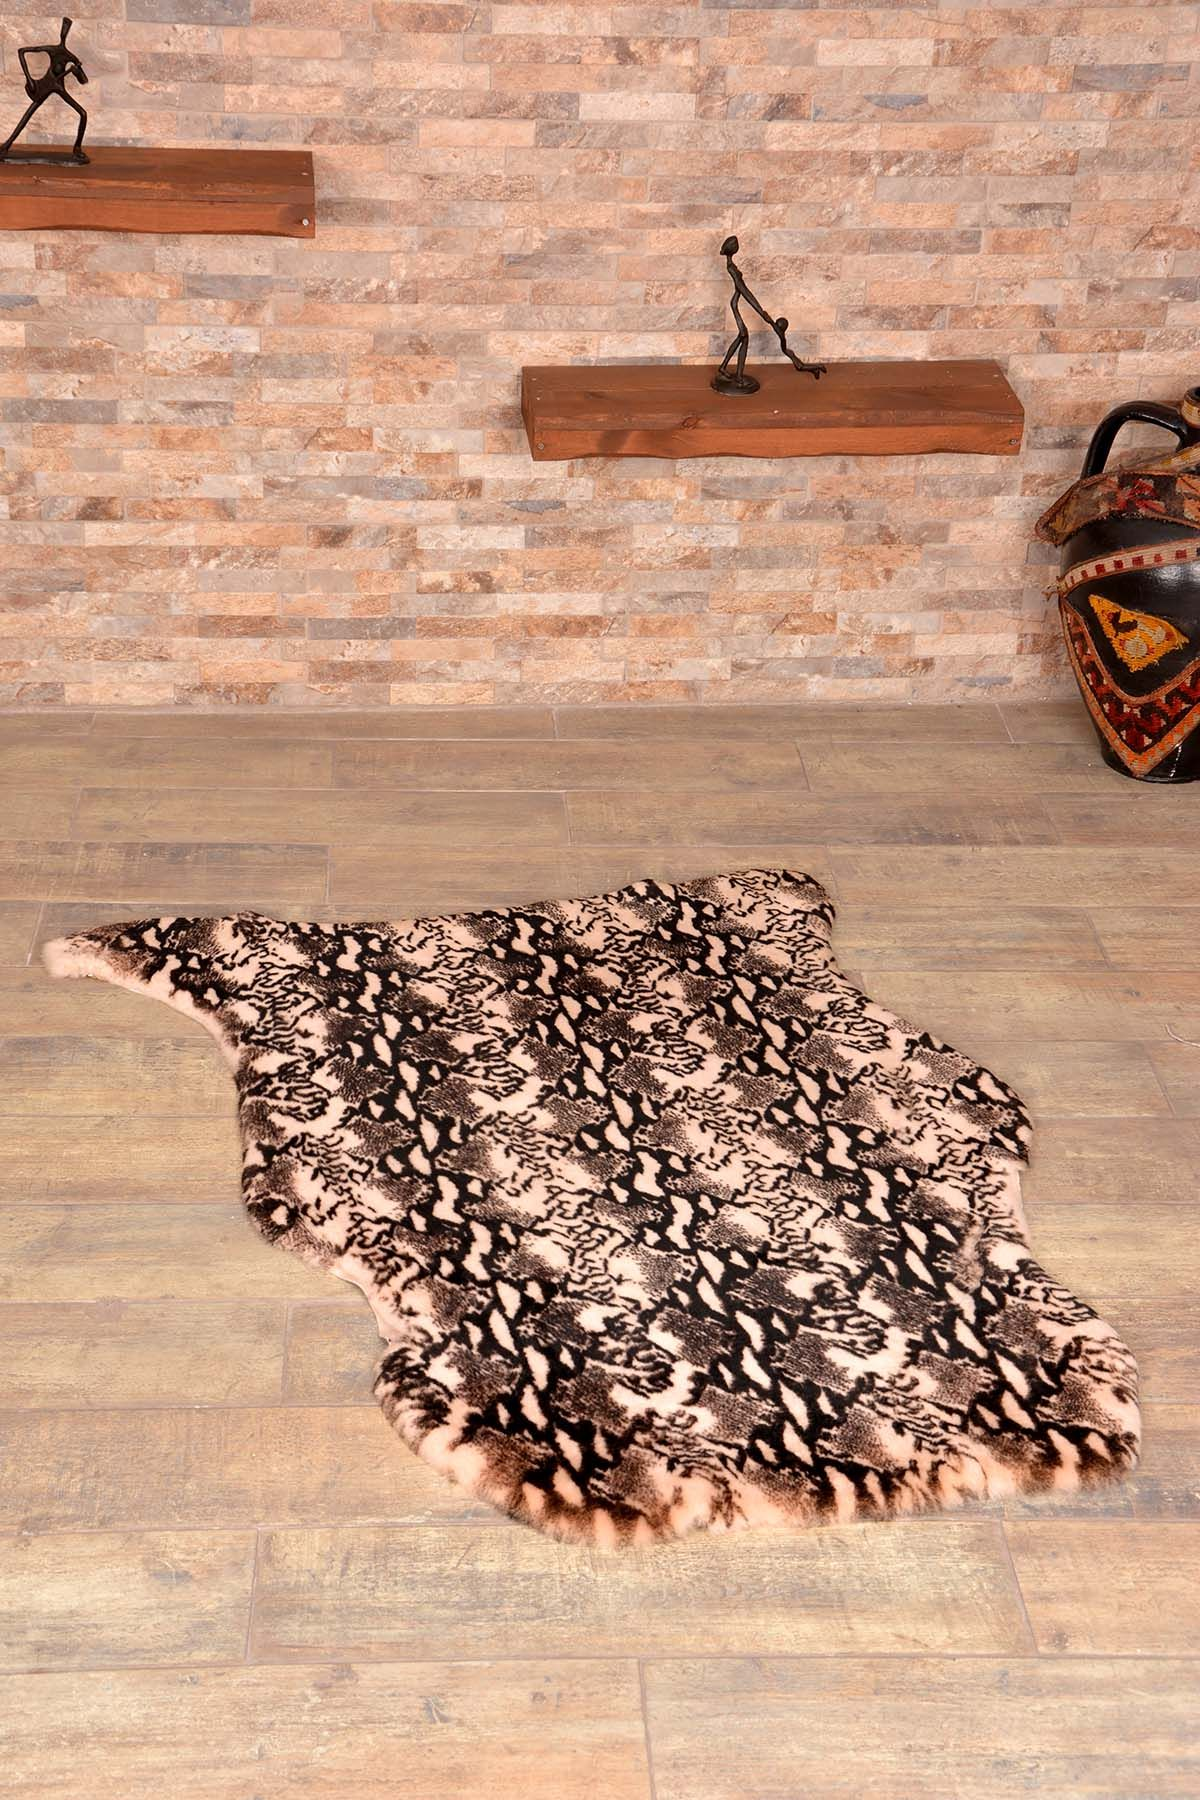 Erdogan Deri Decorative Sheepskin Rug Decorated With Anaconda Pattern Natural